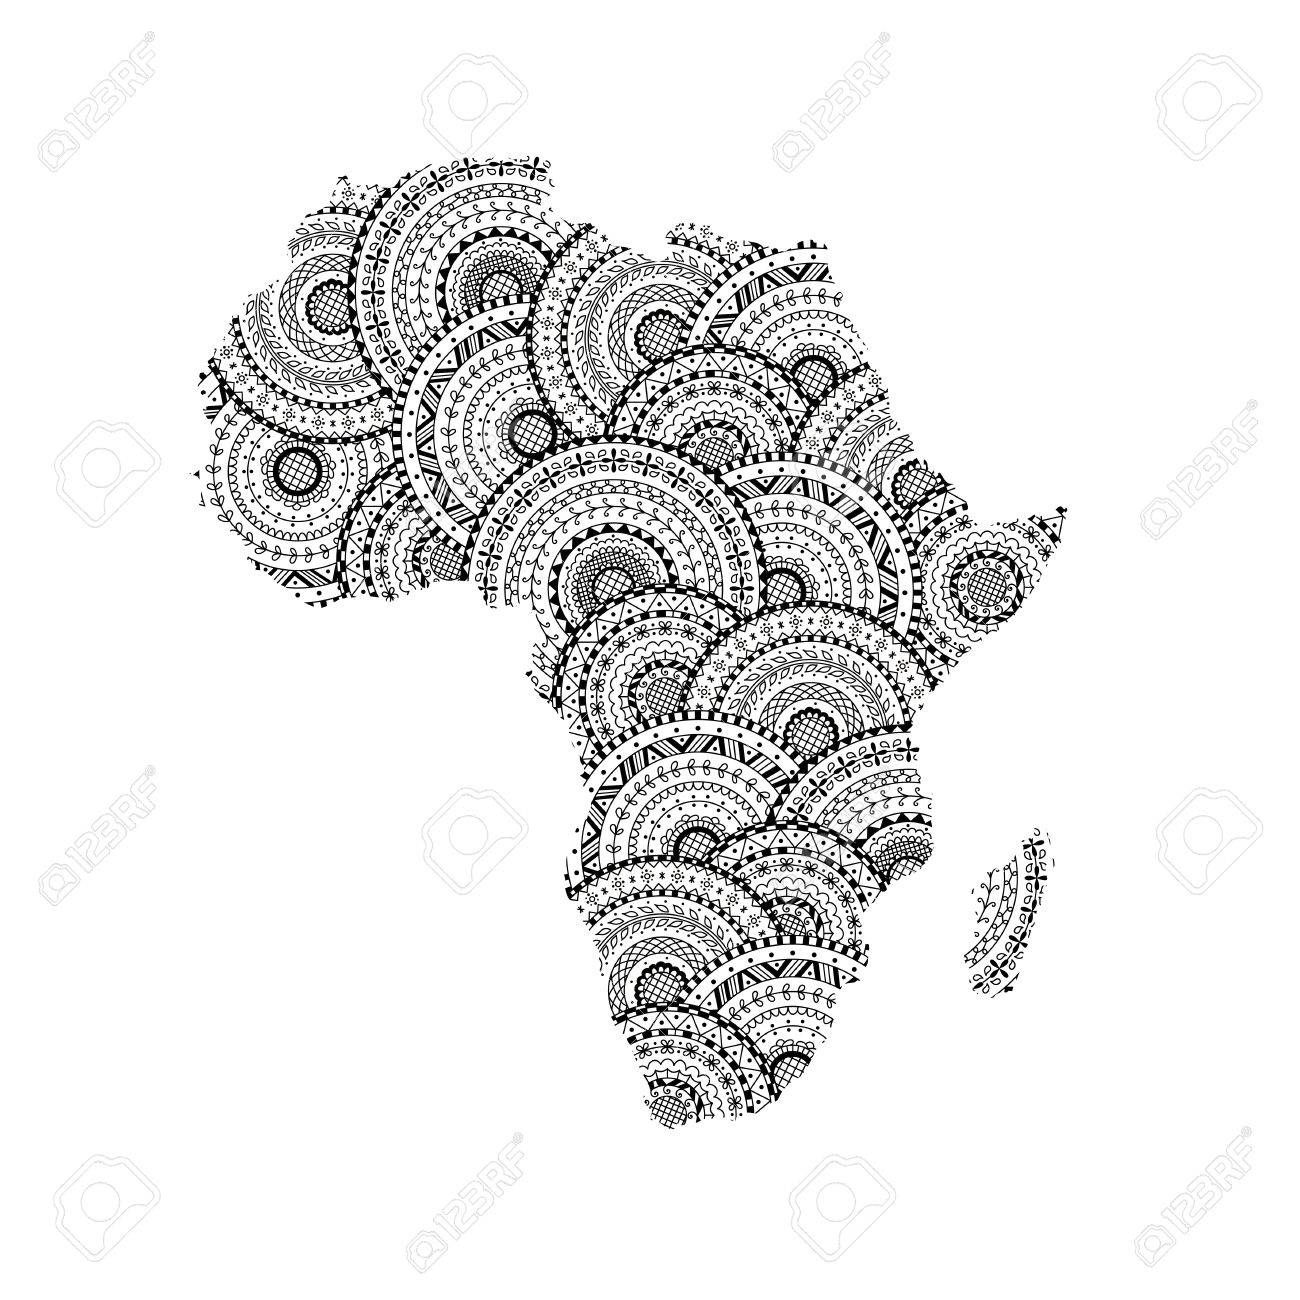 vector silhouette of africa and madagascar map from black and